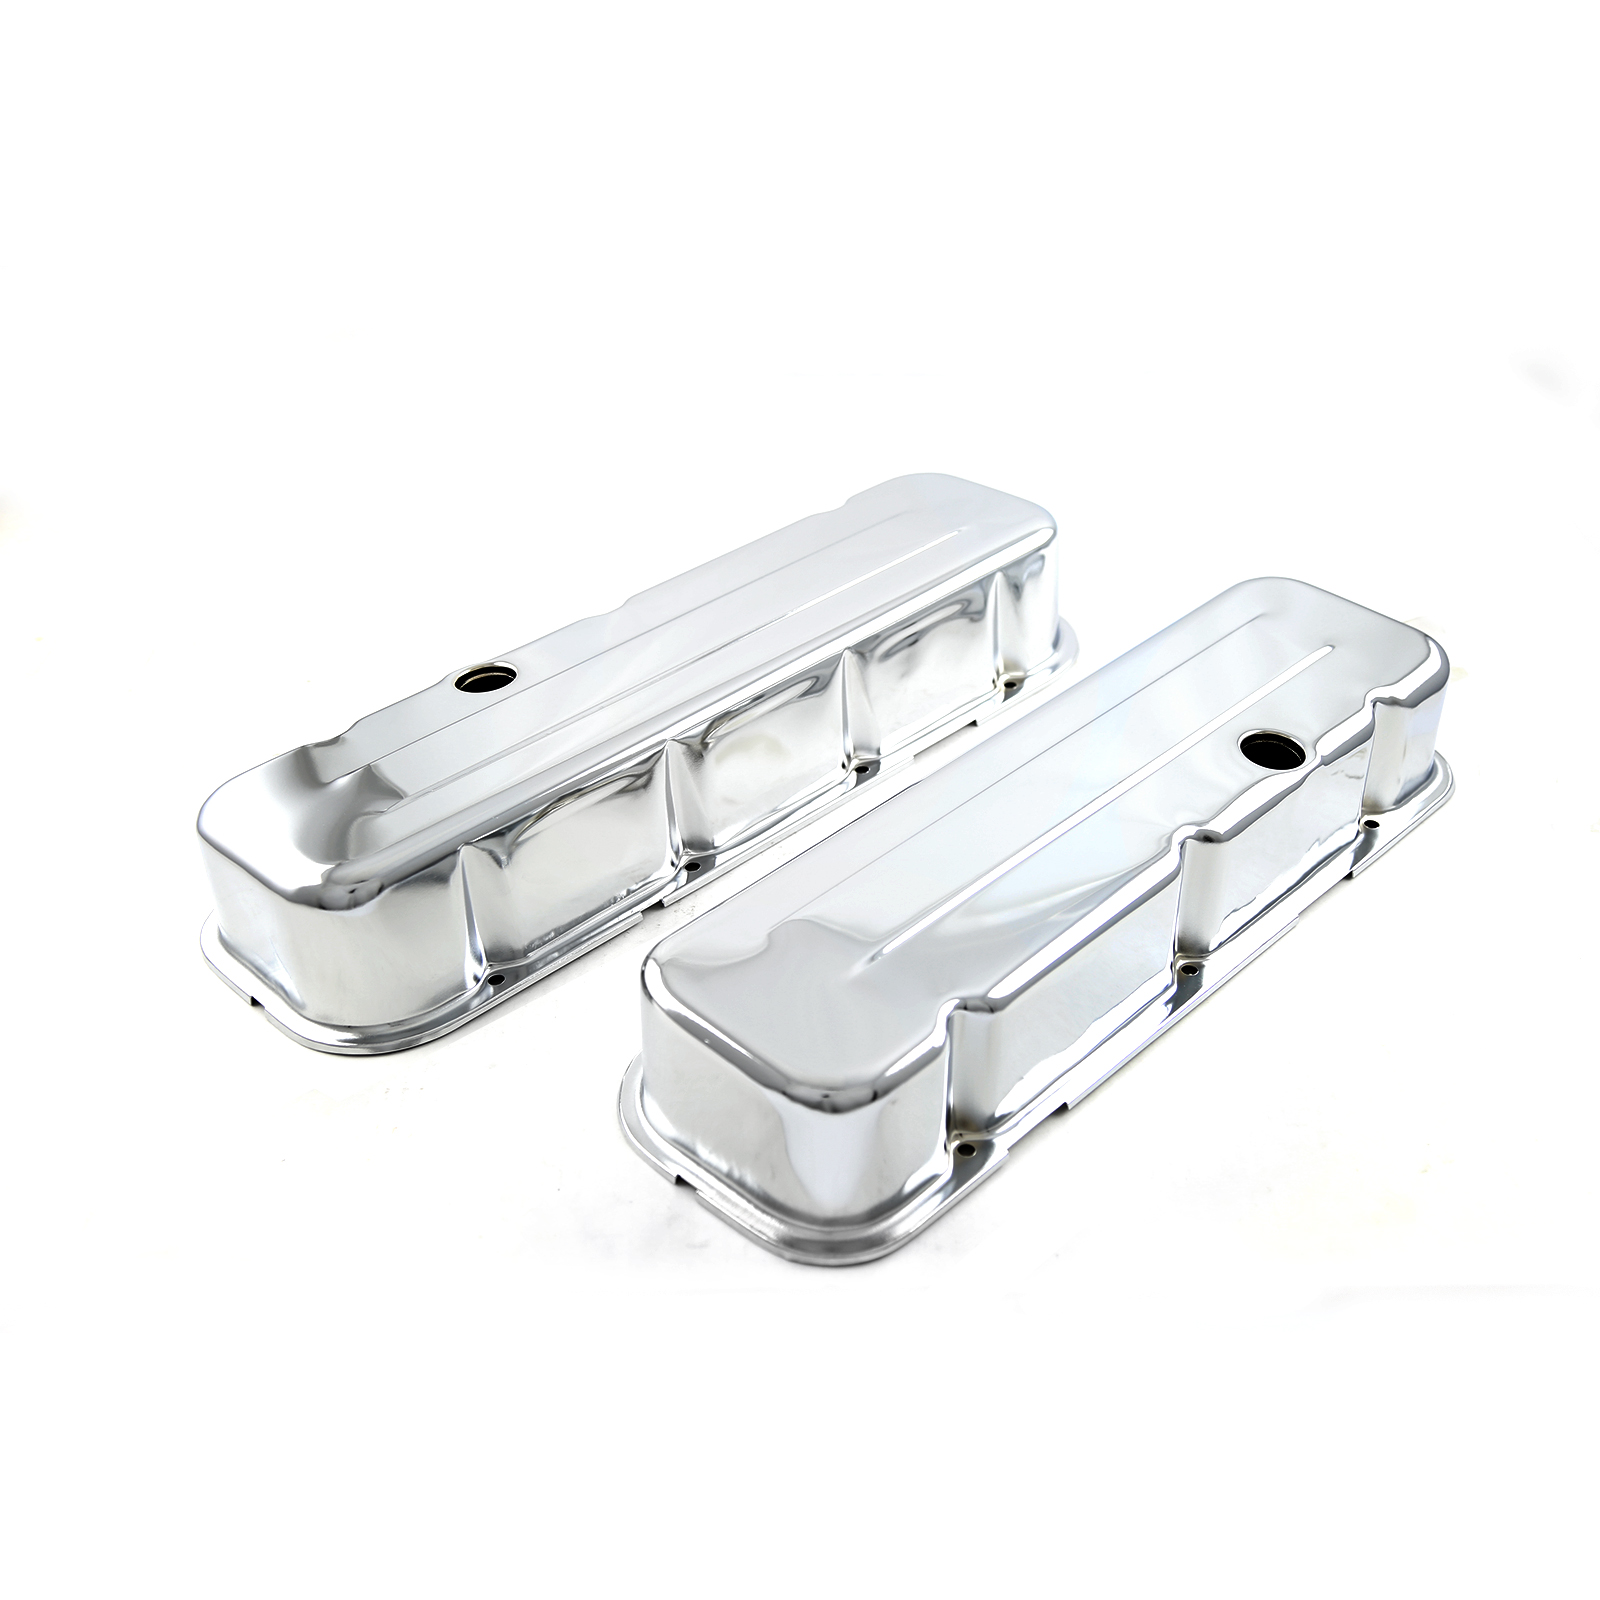 Chevy BBC 454 Chrome Valve Covers - Tall w/ Hole